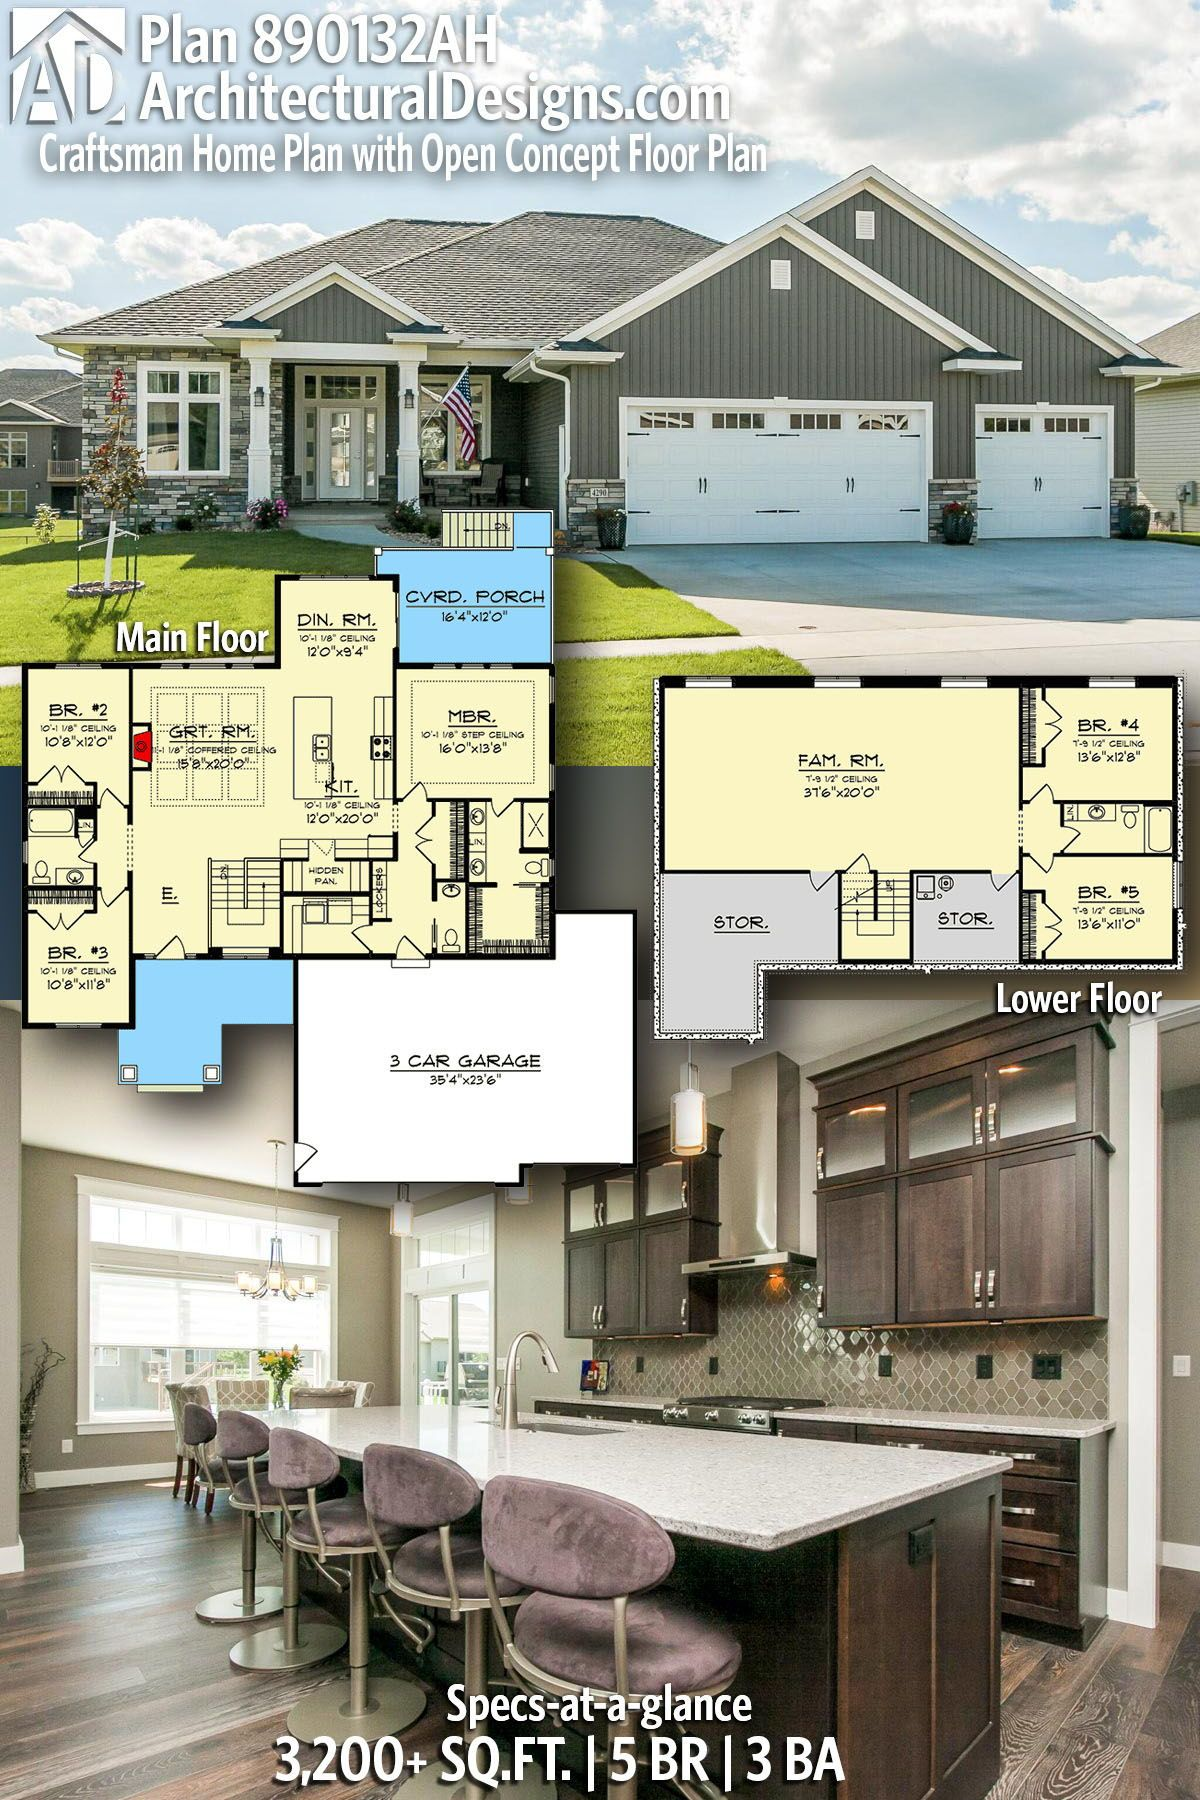 Plan 890132ah Craftsman Home Plan With Open Concept Floor Plan In 2020 New House Plans Craftsman House Plans Craftsman House